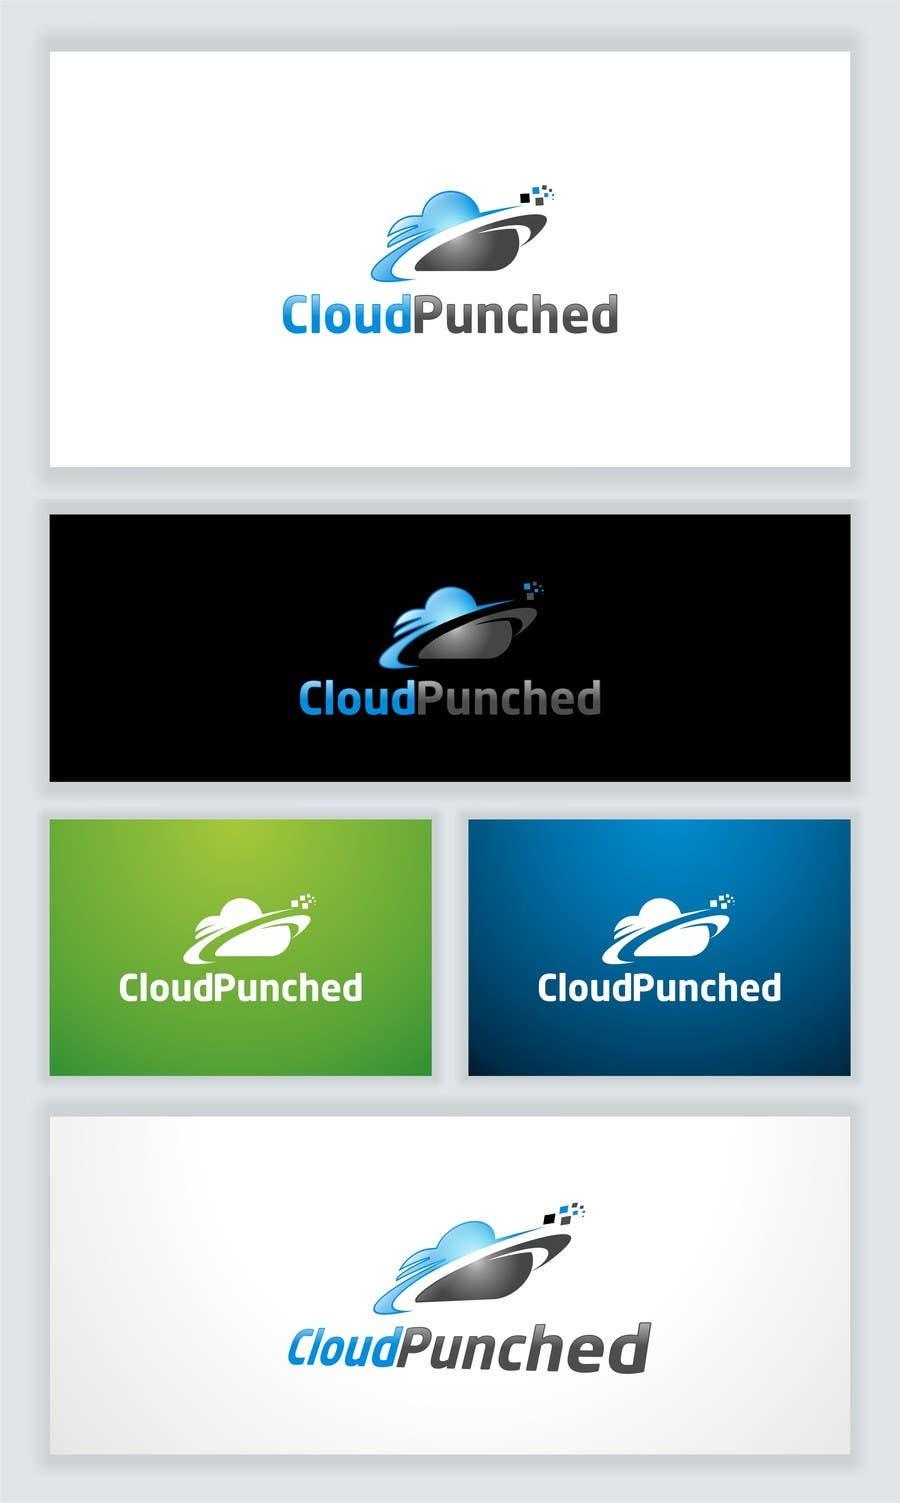 #186 for Design a Logo for Cloud Punched startup by OneTeN110